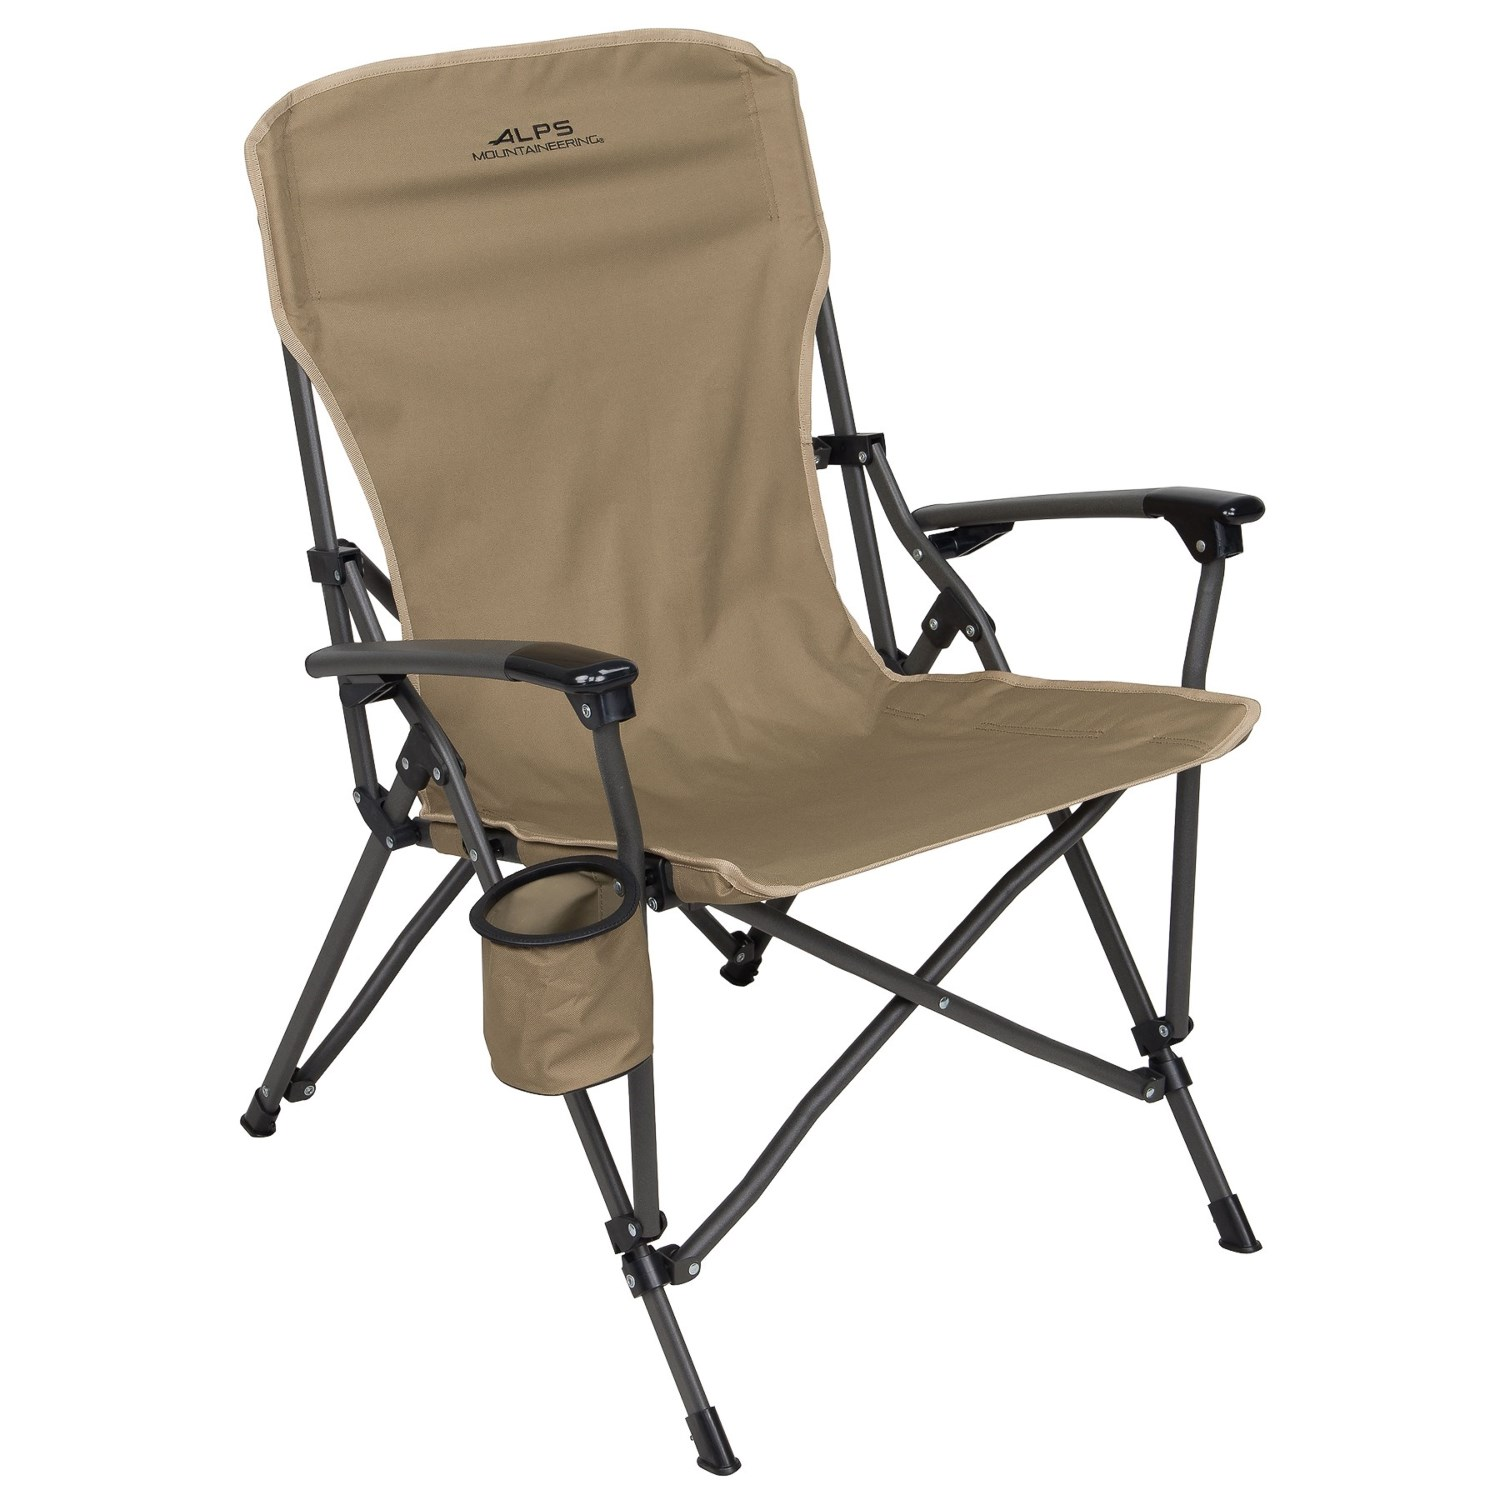 Collapsible Chair Alps Mountaineering Steel Leisure Chair